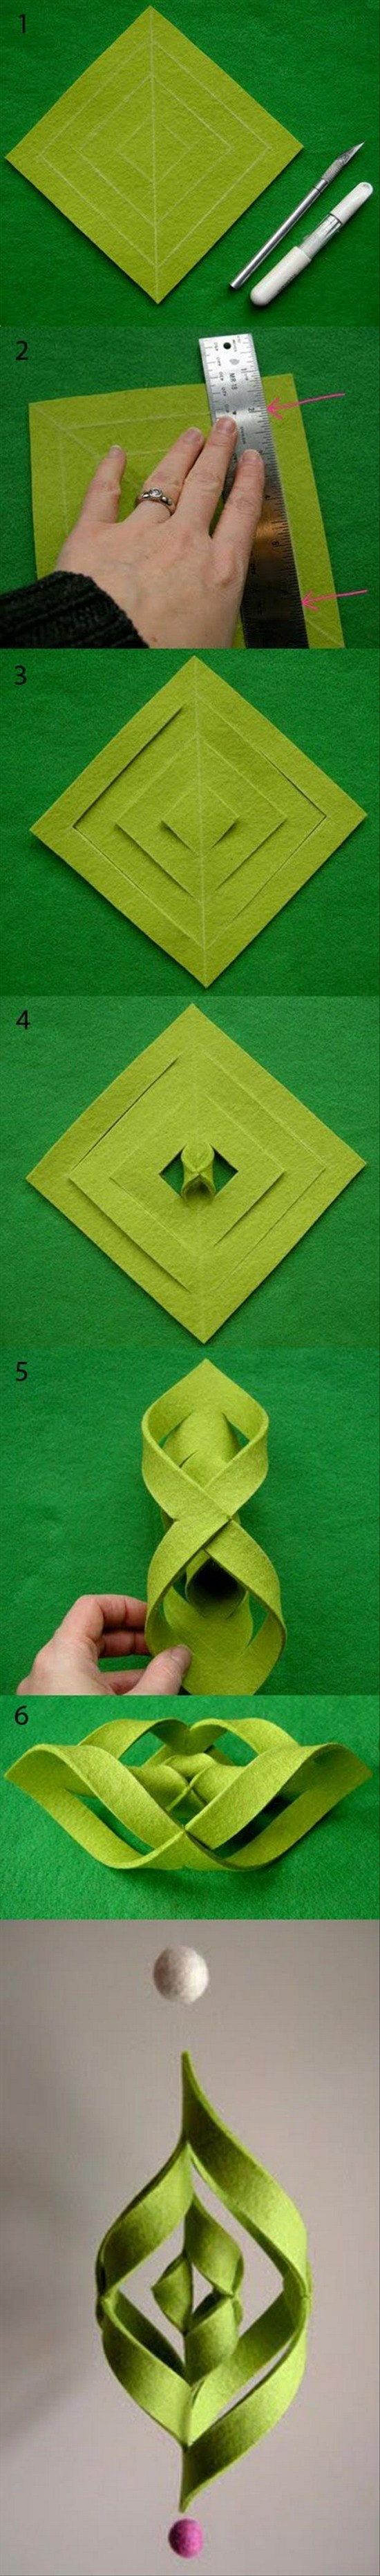 15 Awesome Craft Ideas - FunCage on Awesome Ideas  id=26949